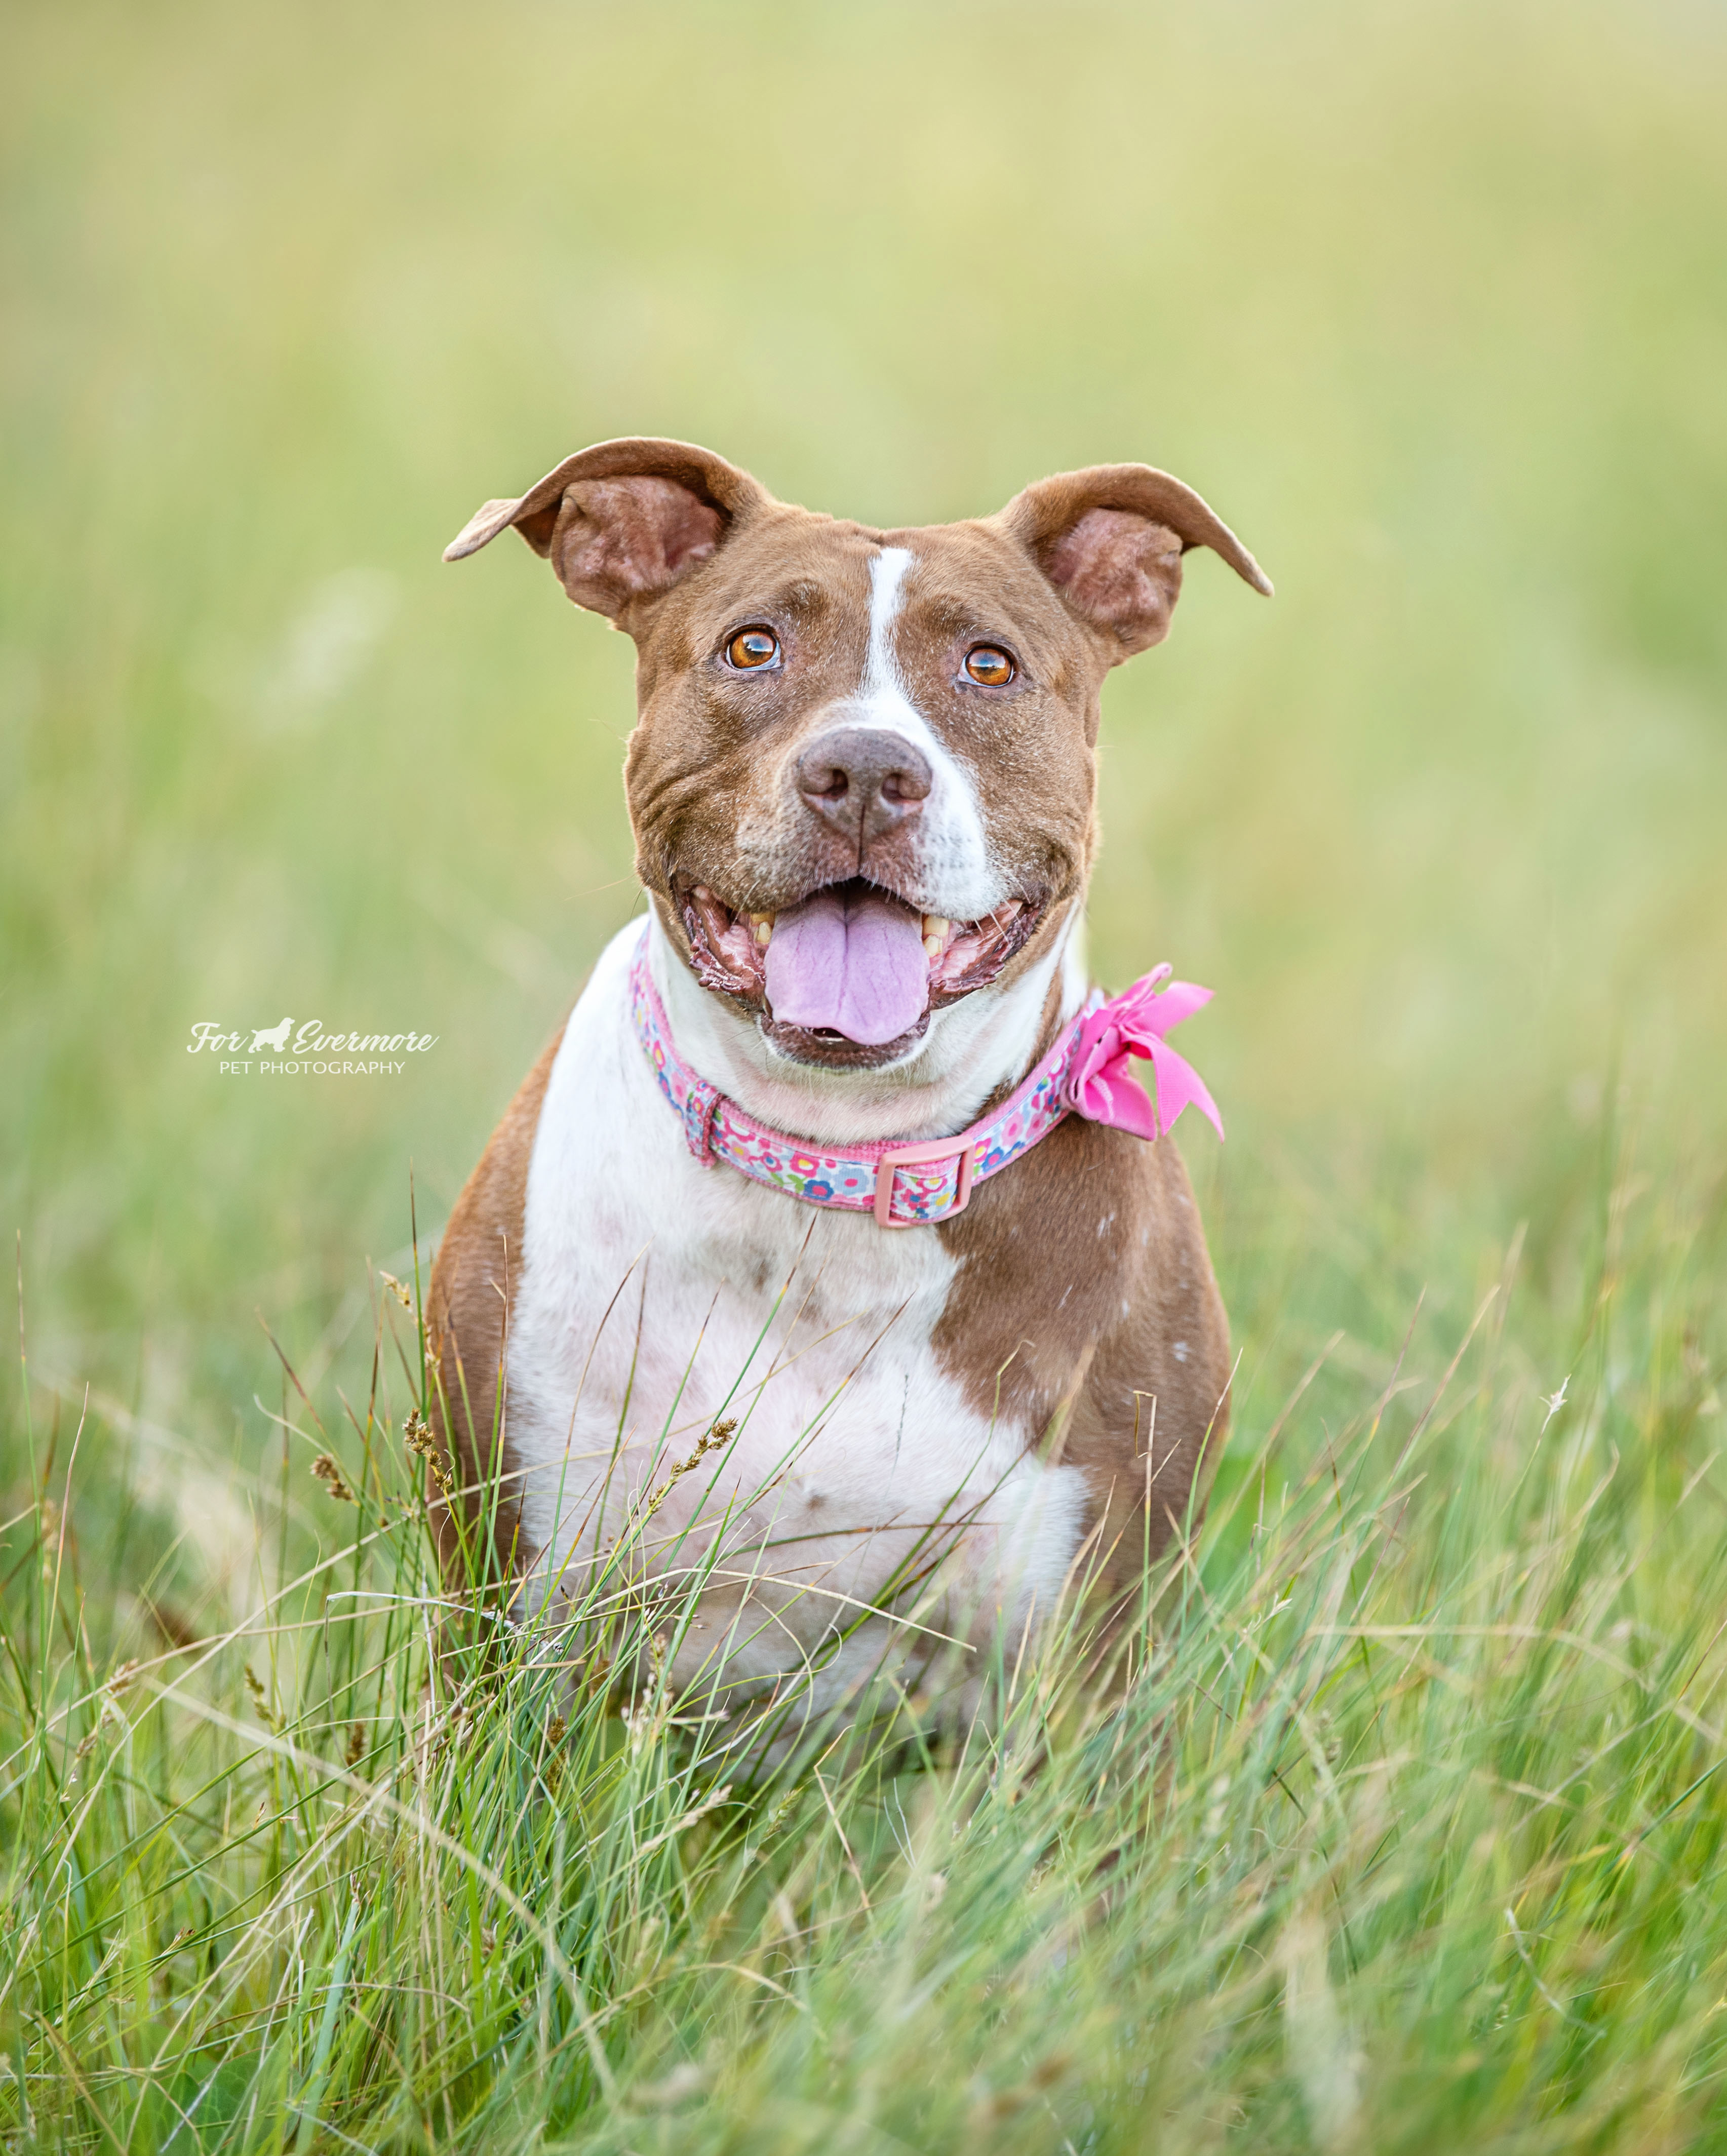 Lilybeth the Pit Bull in the meadow